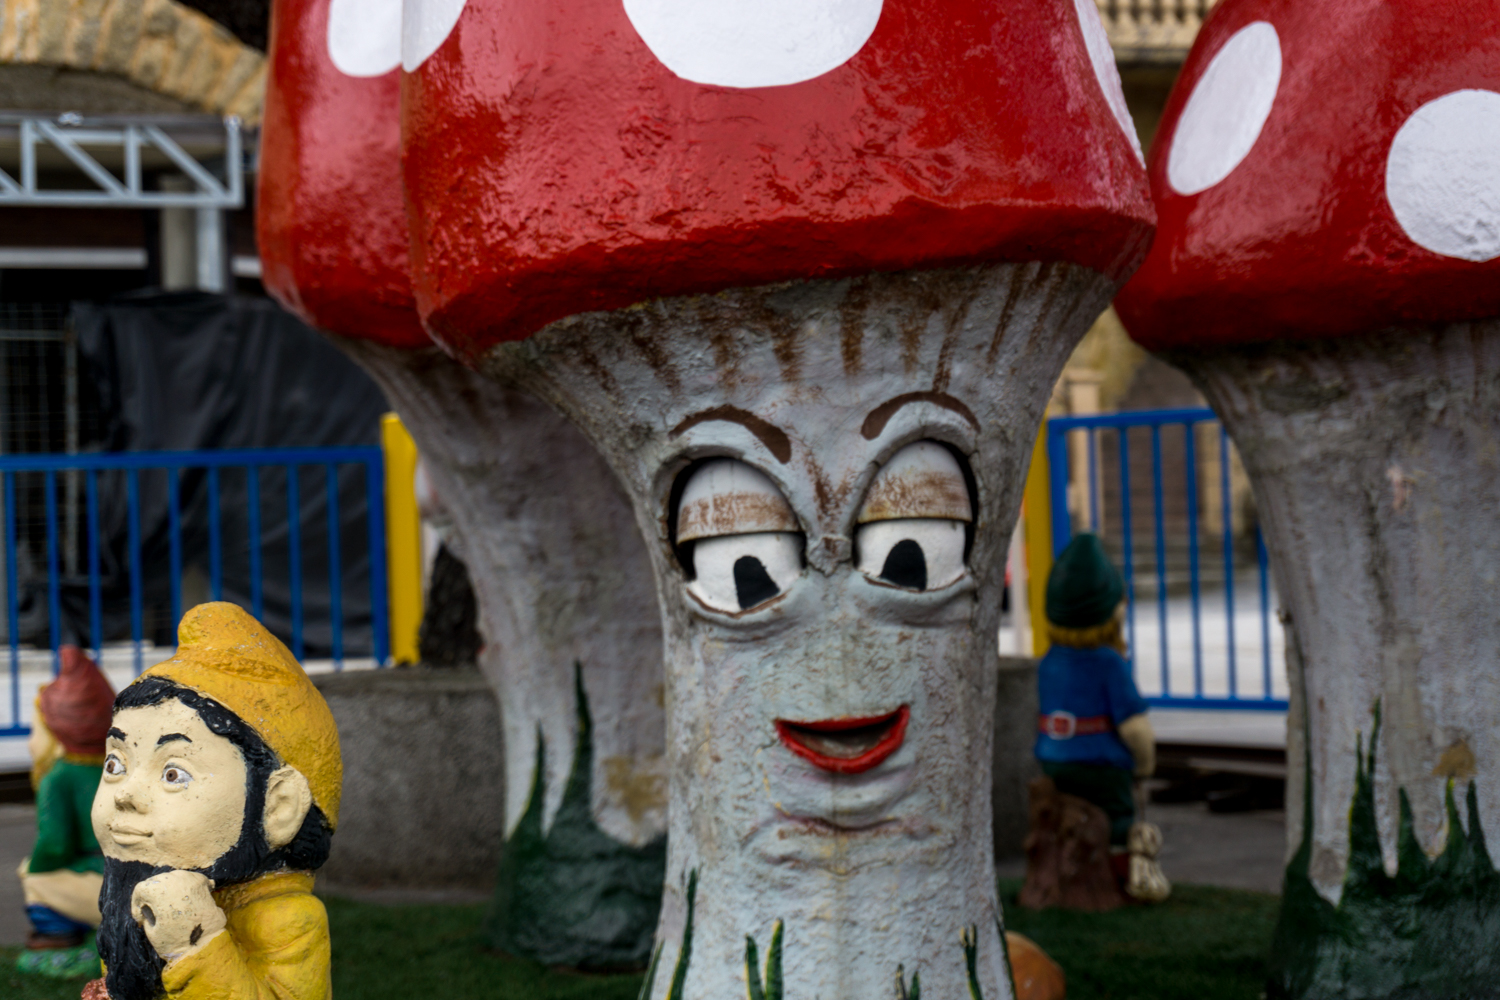 At least the mushrooms were having a good time on top of Mount Igueldo